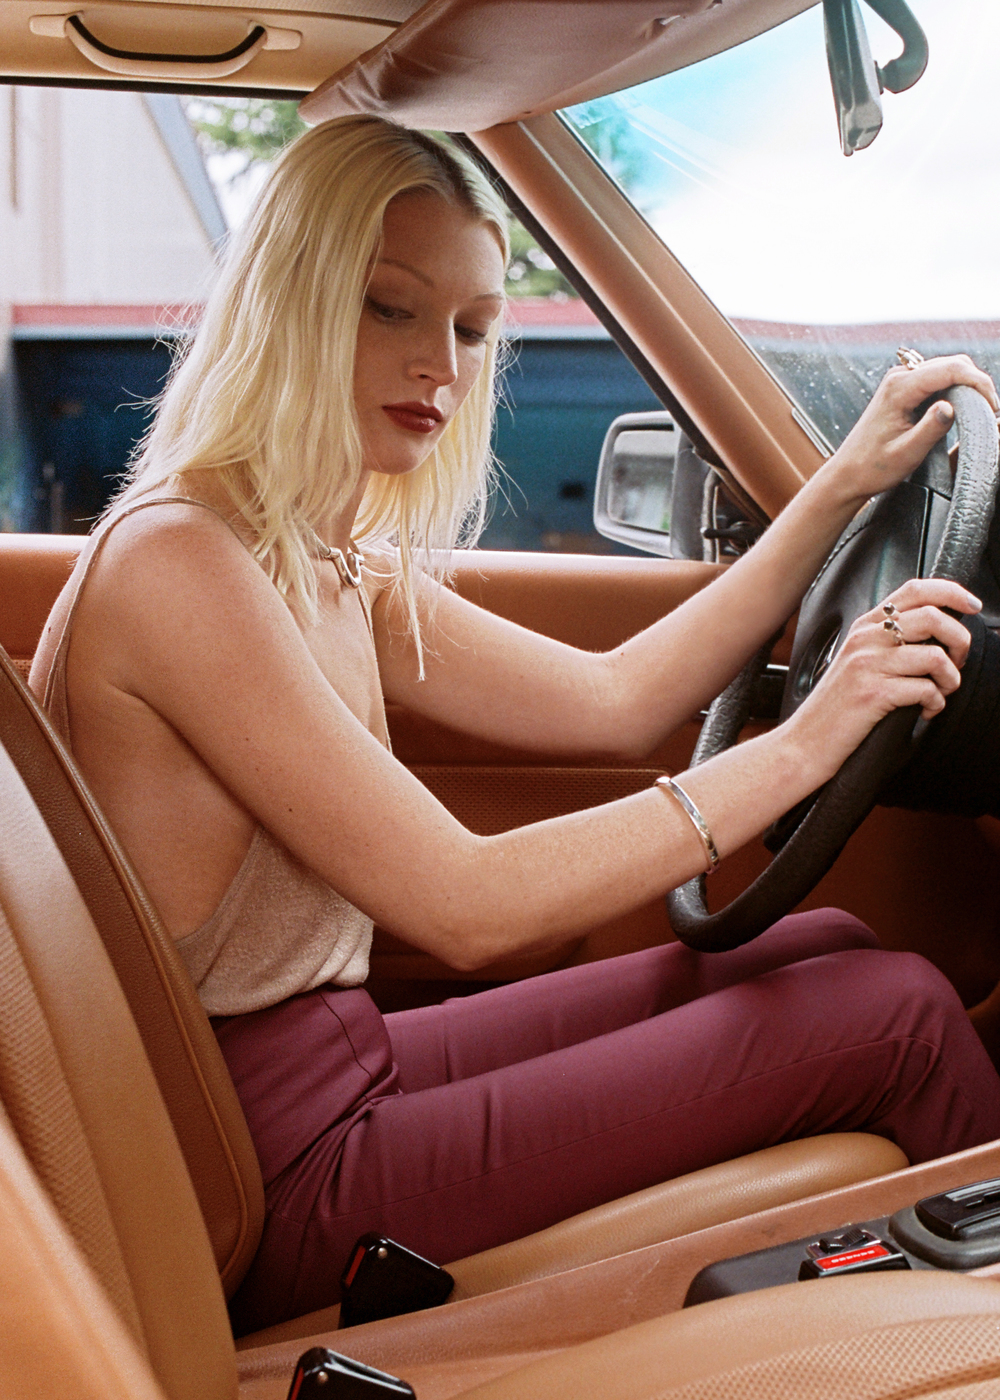 wednesday_jewellery_car_bracelet_ian_lanterman